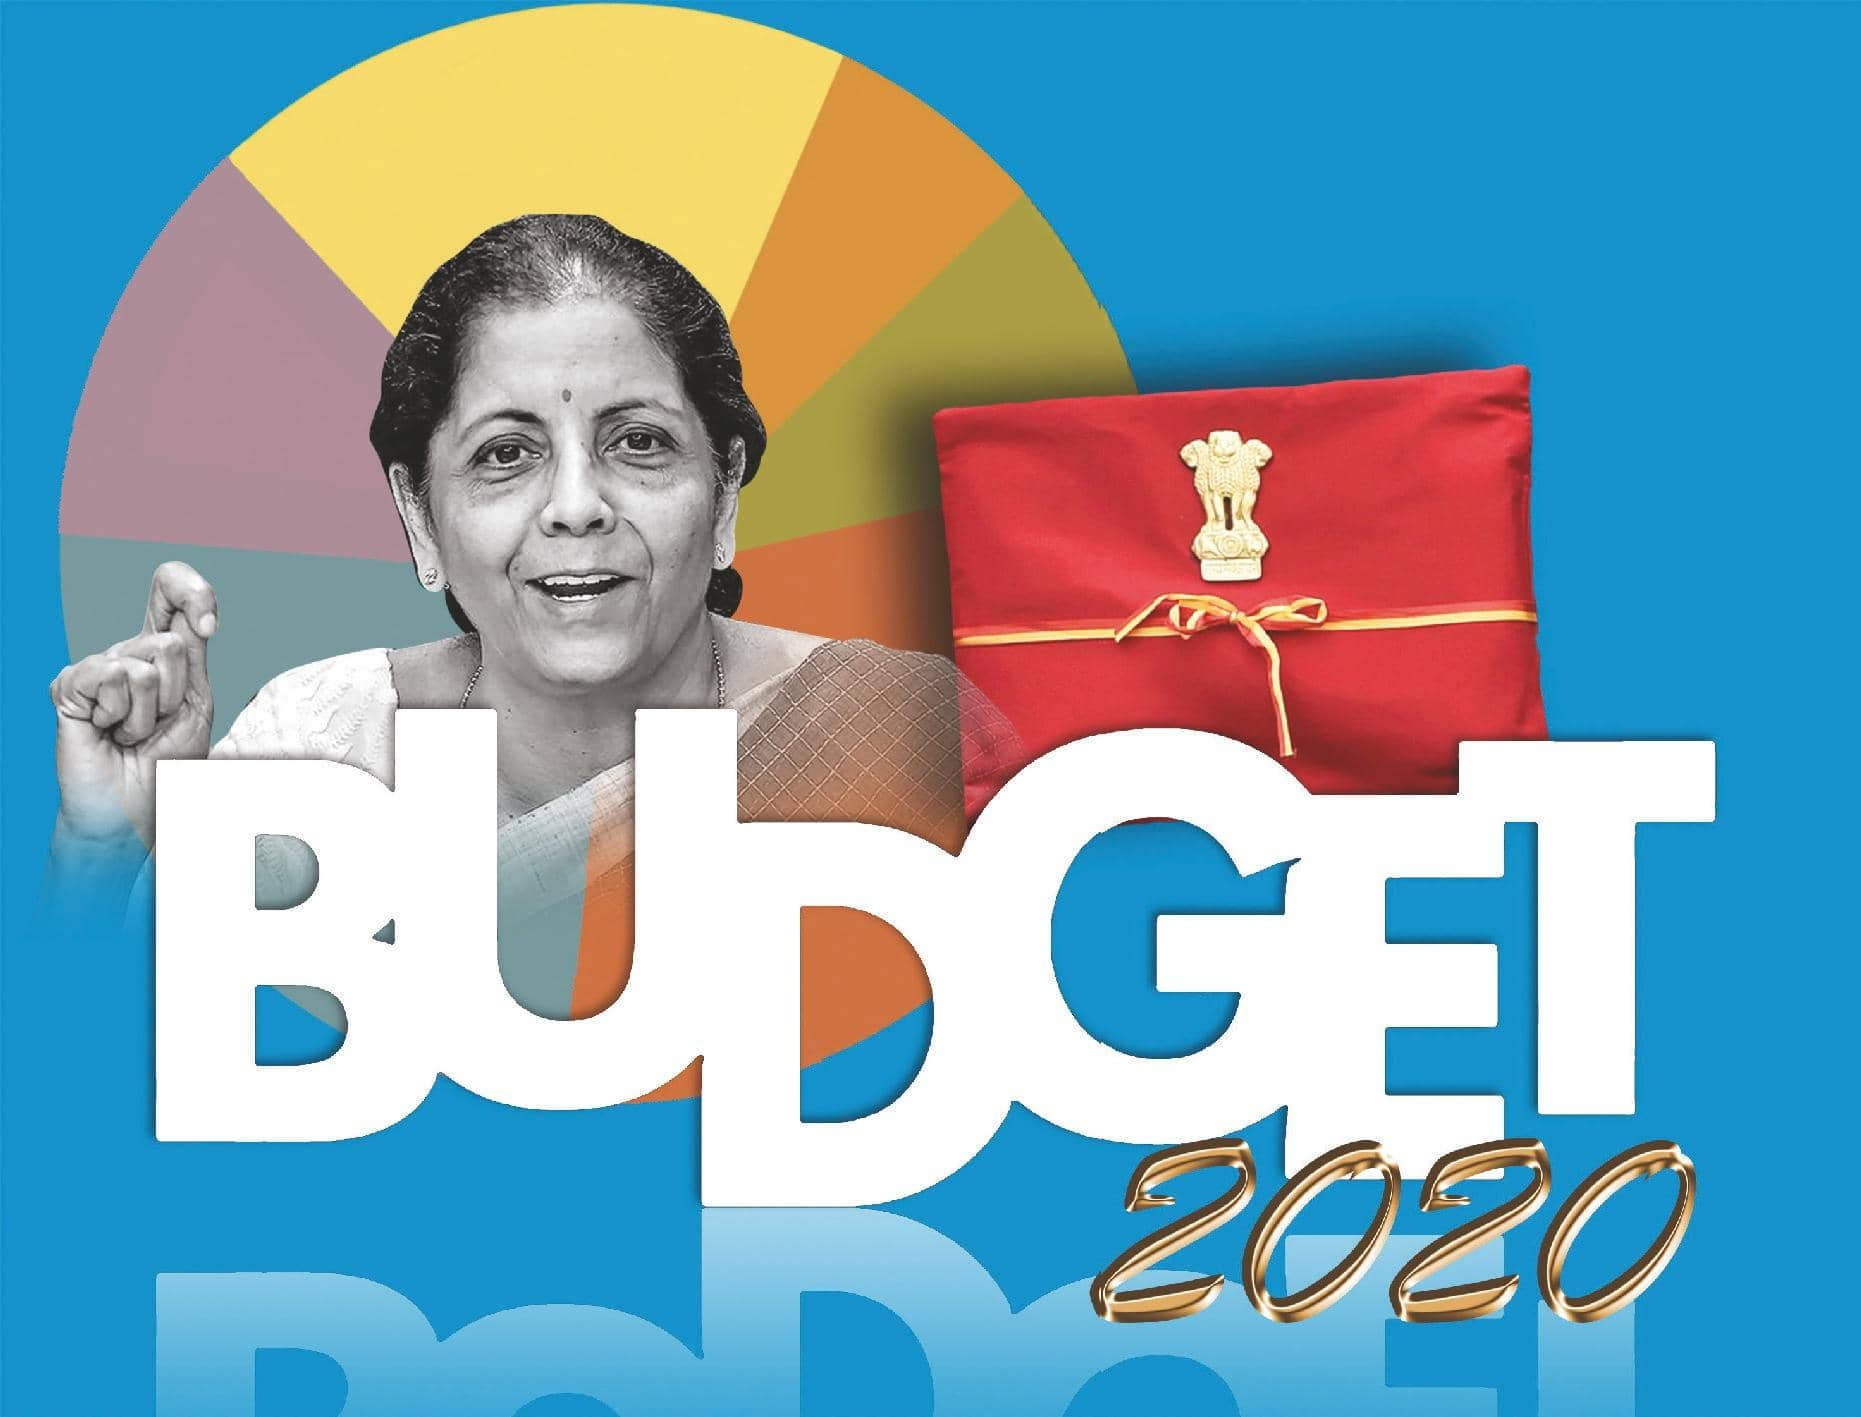 Budget 2020: A Mixed Bag of Hits & Misses